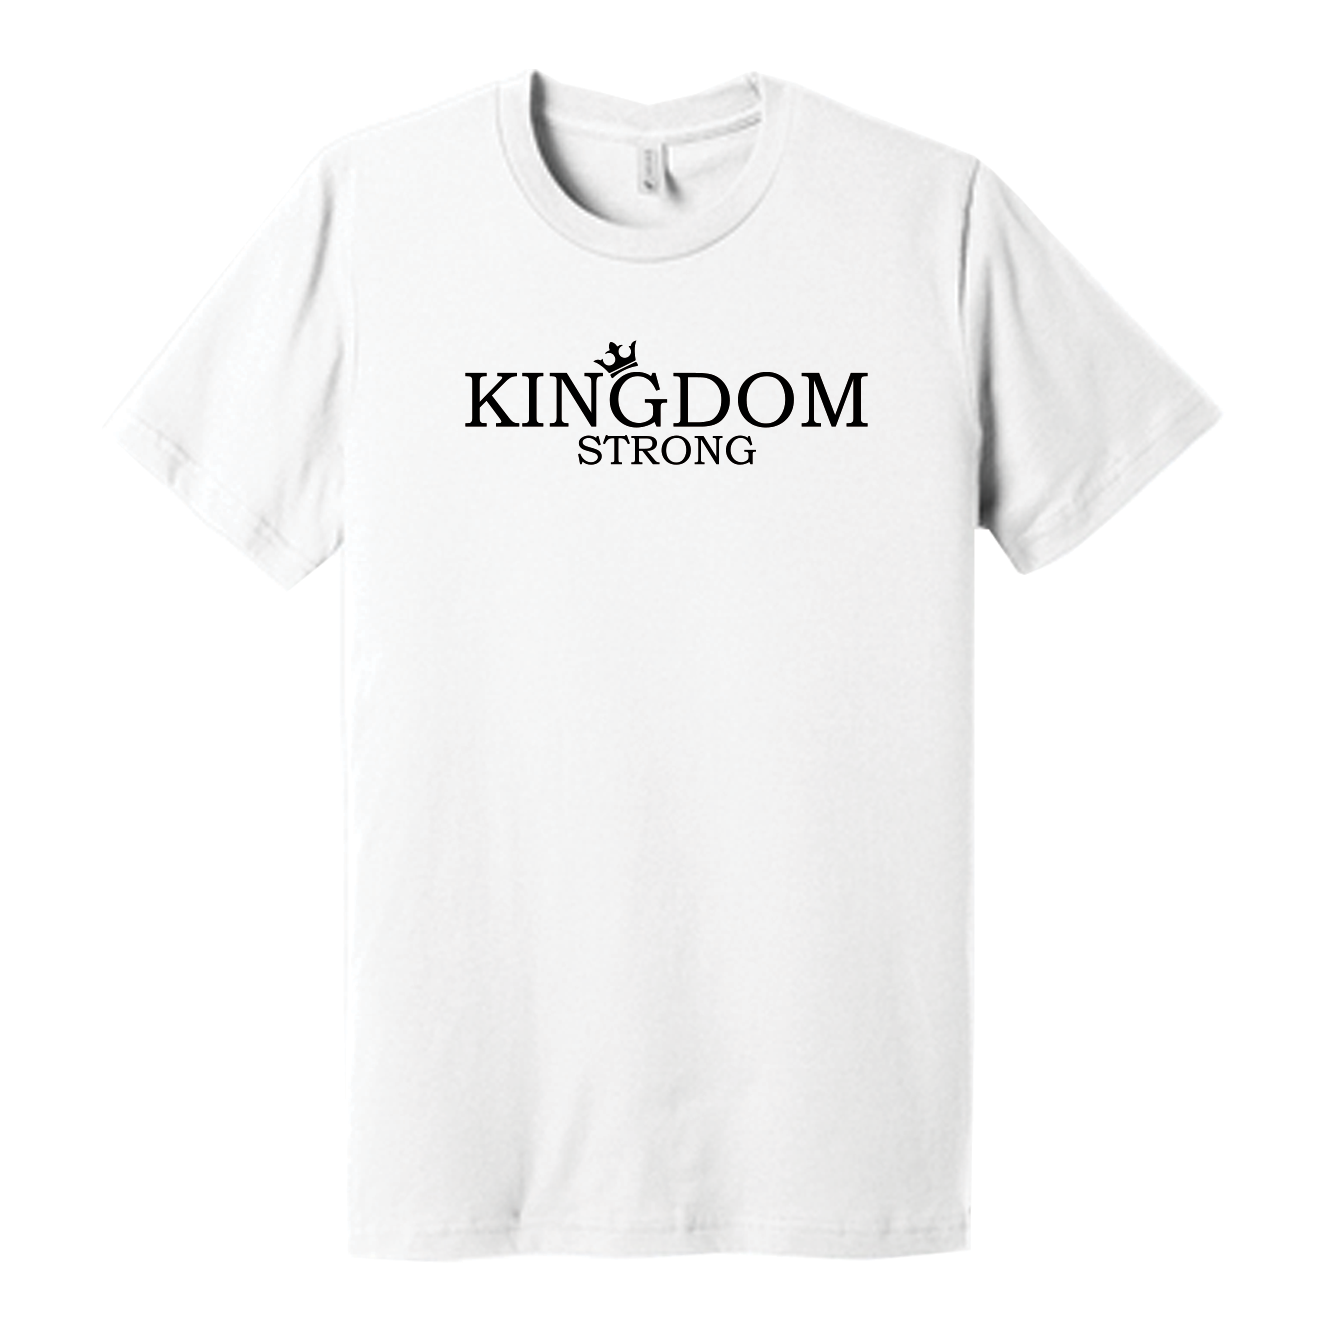 Wht Shirt Kingdom Strong